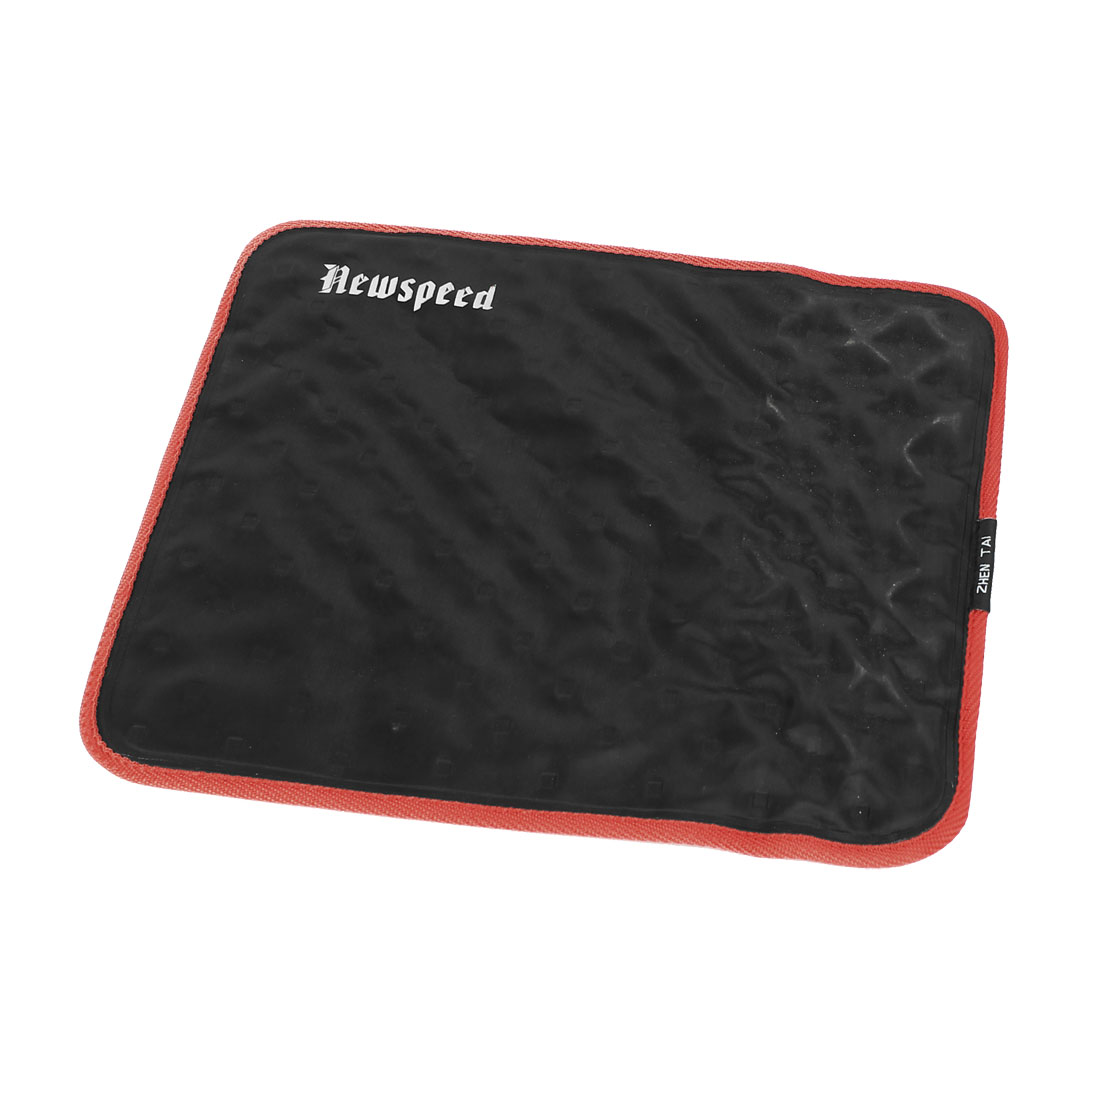 Notebook Laptop Black Red Cooling Pad Mat Heatsink 35cm x 31cm